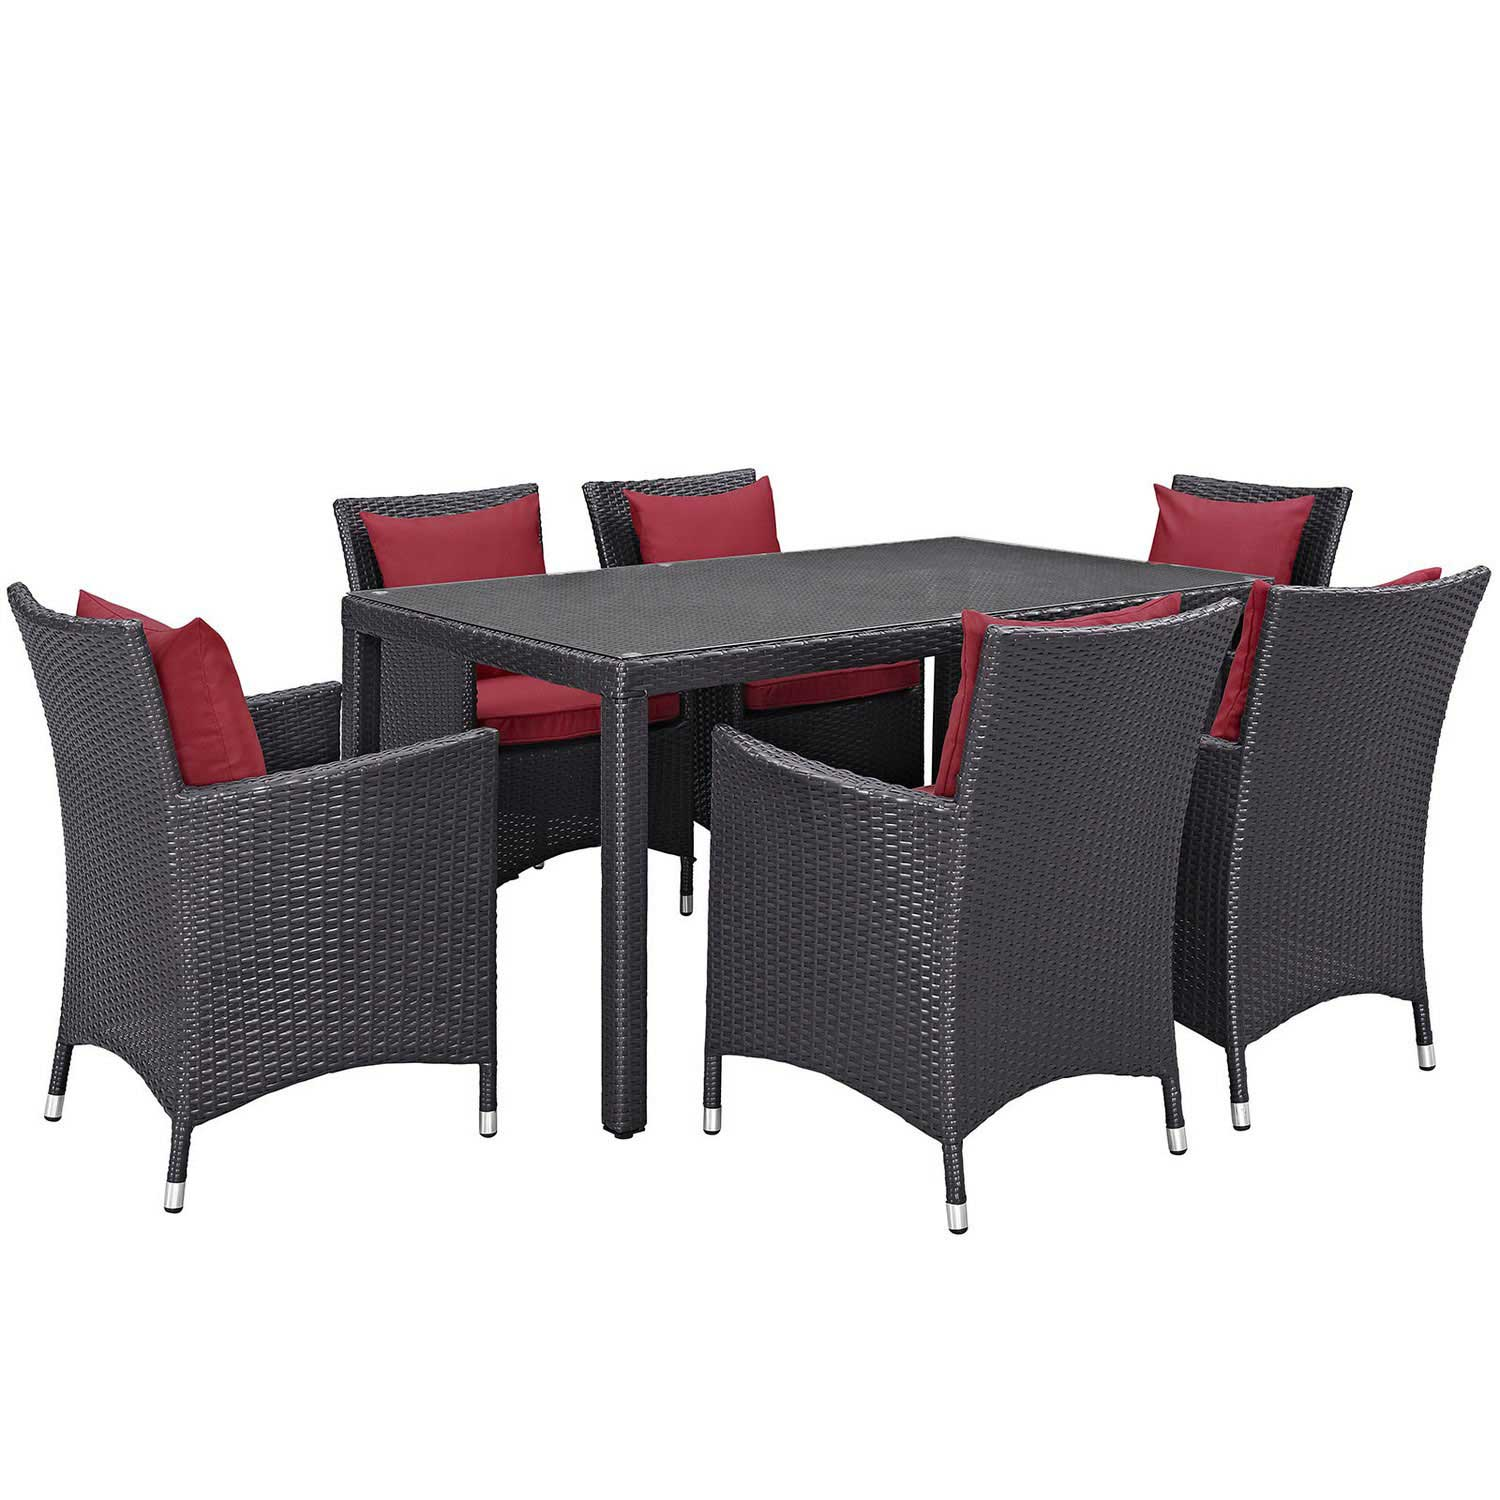 Modway Convene 7 Piece Outdoor Patio Dining Set - Espresso Red